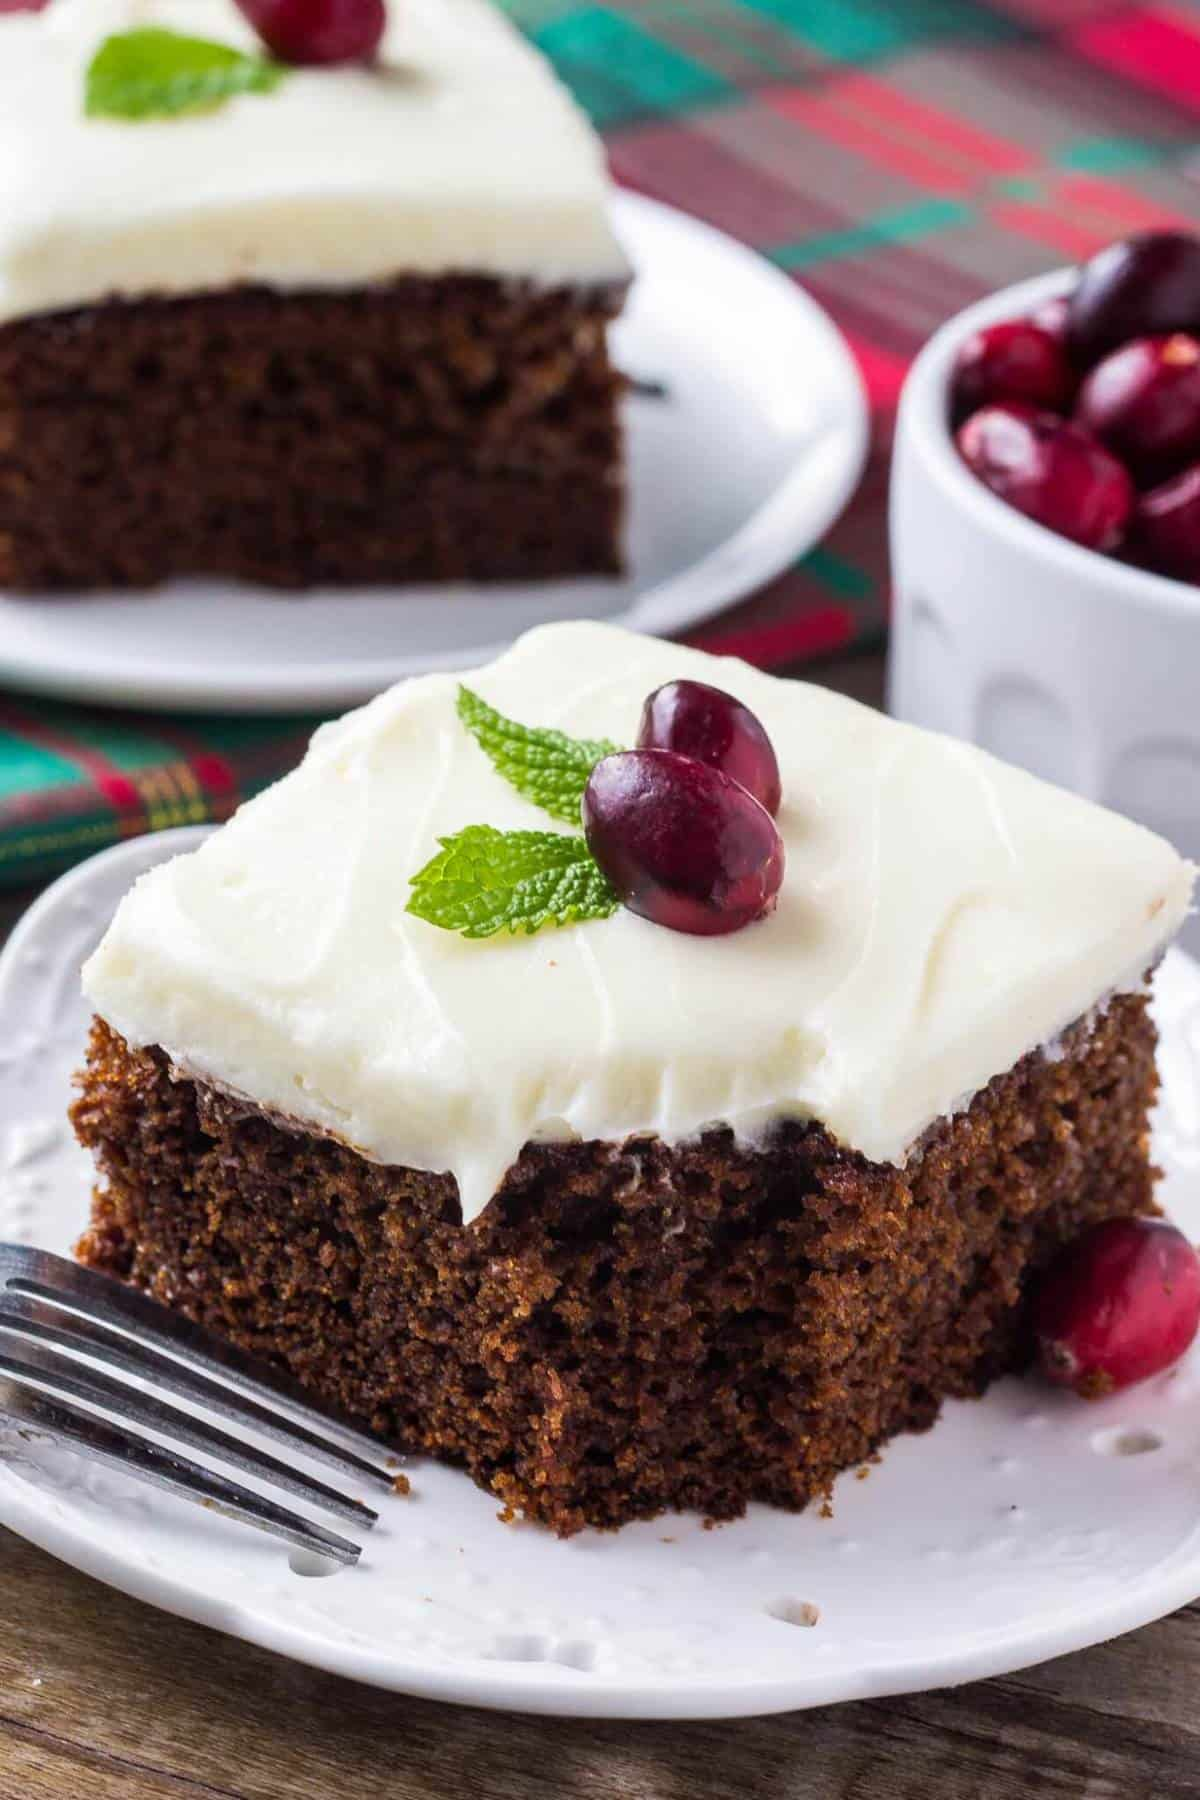 This super moist, spiced gingerbread cake with cream cheese frosting is perfect for the holidays. It's easy to make & filled with Christmas flavors. #gingerbreadcake #christmasbaking